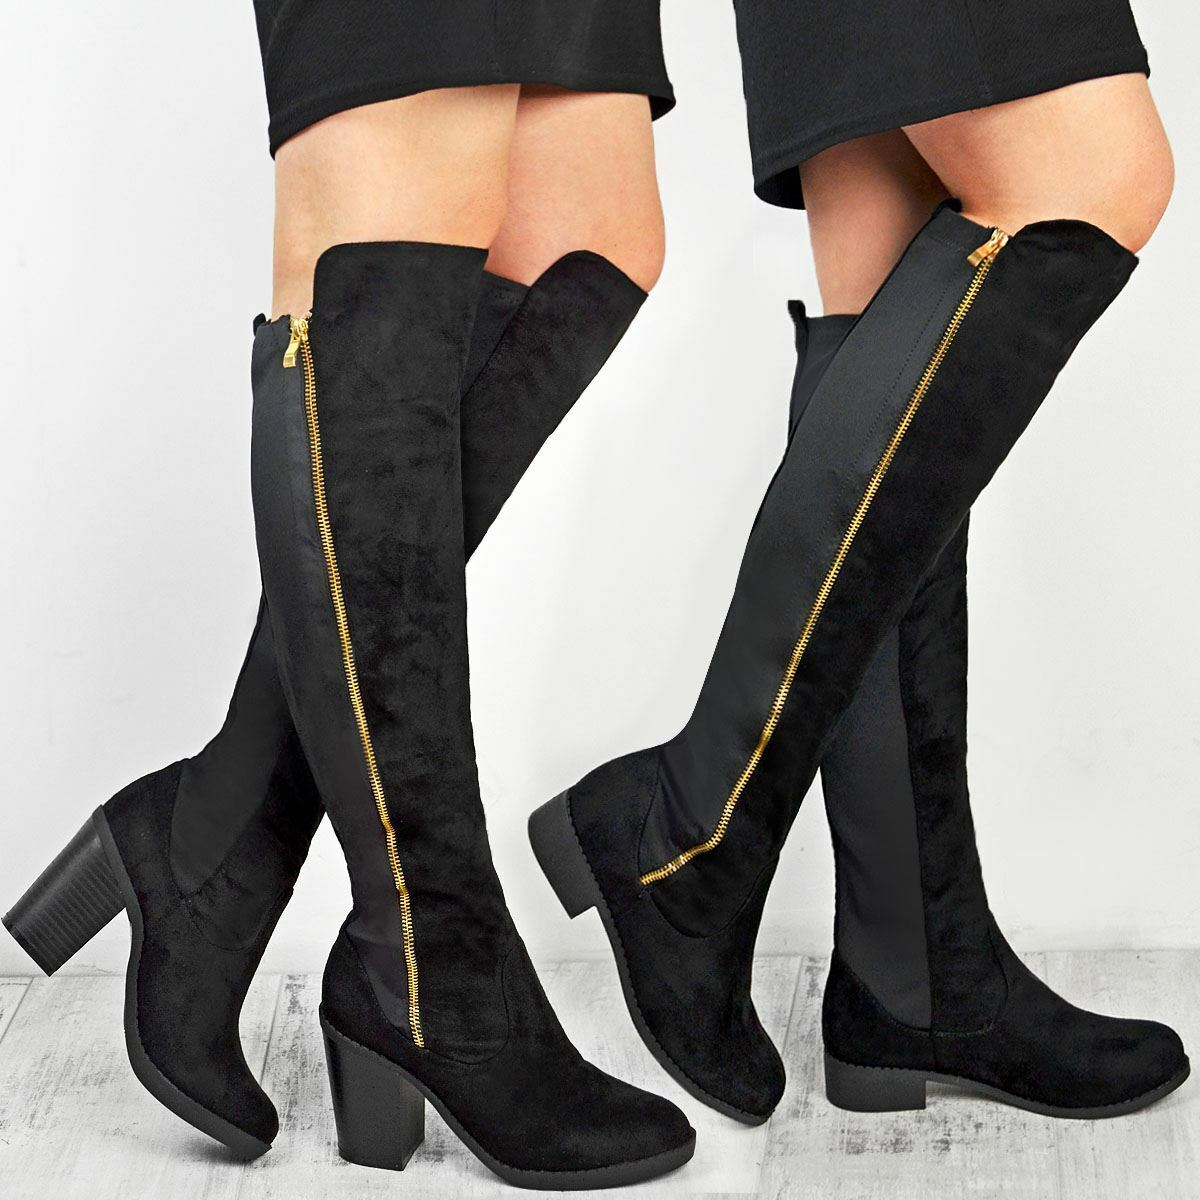 Ladies Womens Over The Knee Boots Stretchy Stretchy Boots Gold Zip Flat Low Block Heel Shoes 9ddce7